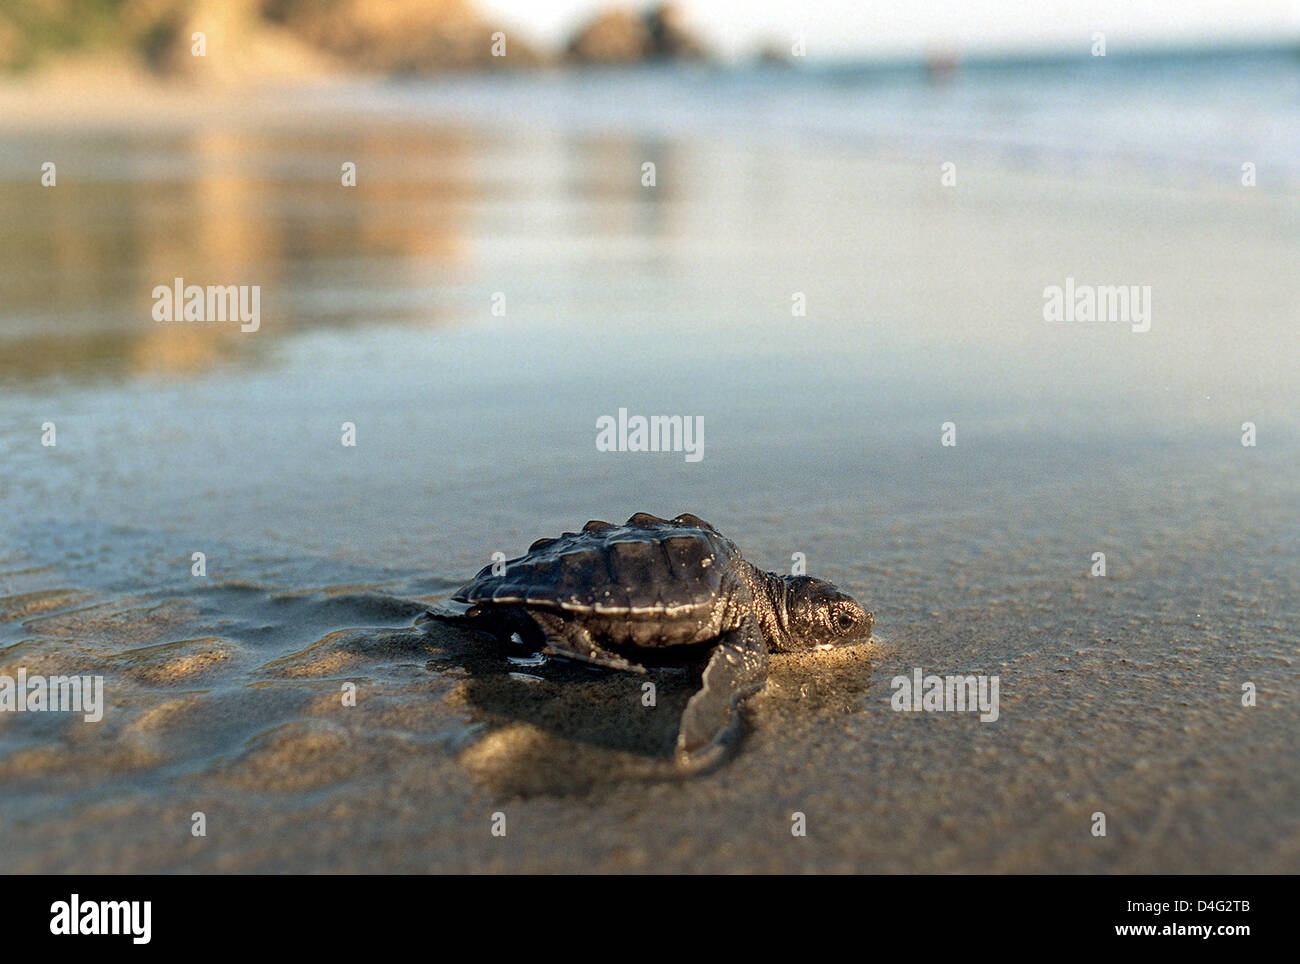 (dpa file)- Nearly done - A newly hatched small Pacific Ridley is on her way into the saving sea on the beach of - Stock Image